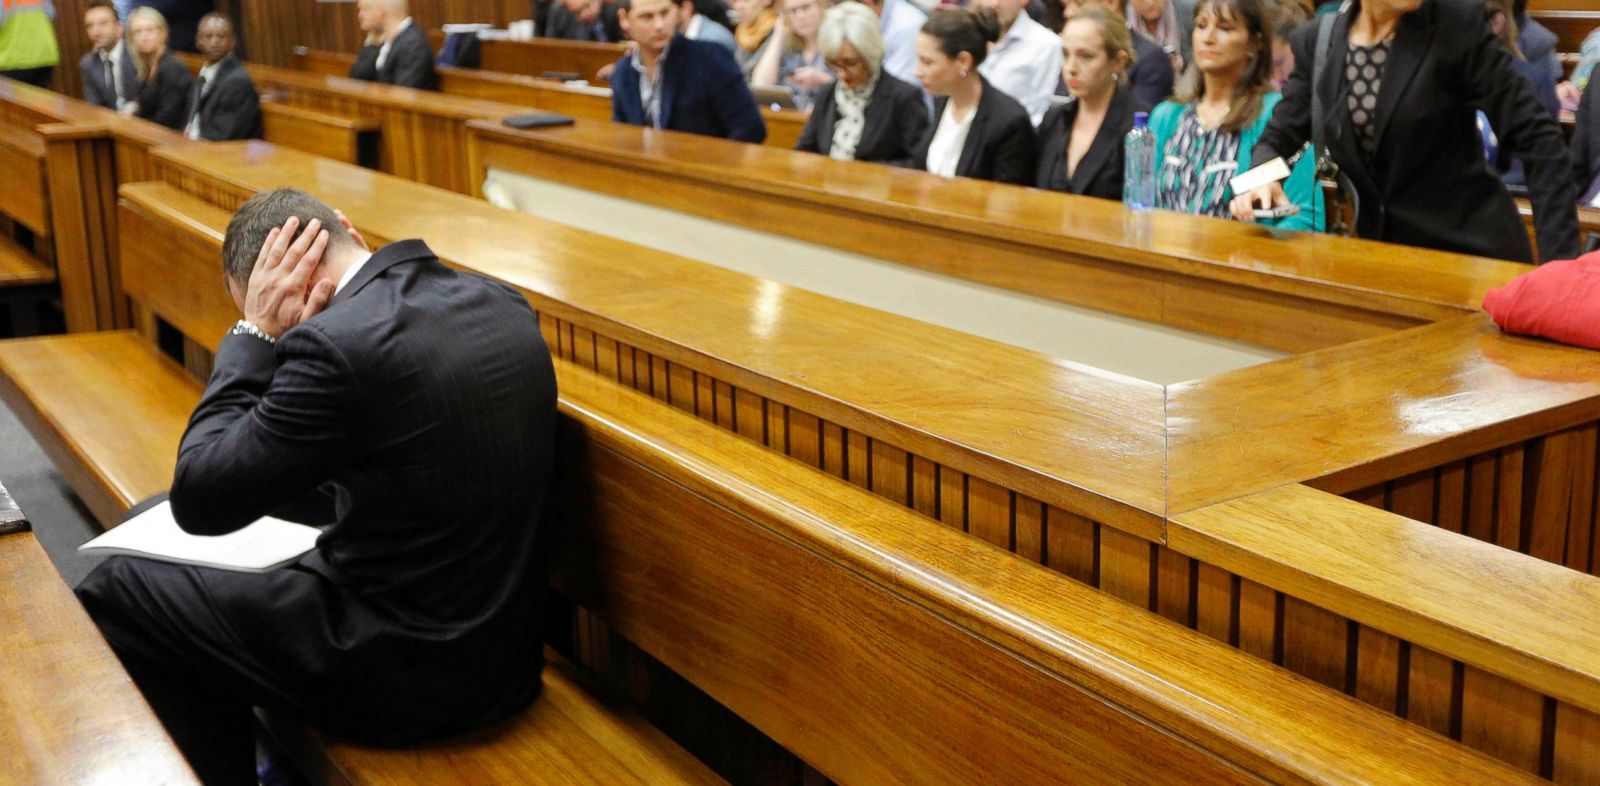 PHOTO: Oscar Pistorius blocks his ears inside the high court on the second day of his trial in Pretoria, South Africa, March 4, 2014. Pistorius is charged with murder for the shooting death of his girlfriend, Reeva Steenkamp, on Valentines Day in 2013.